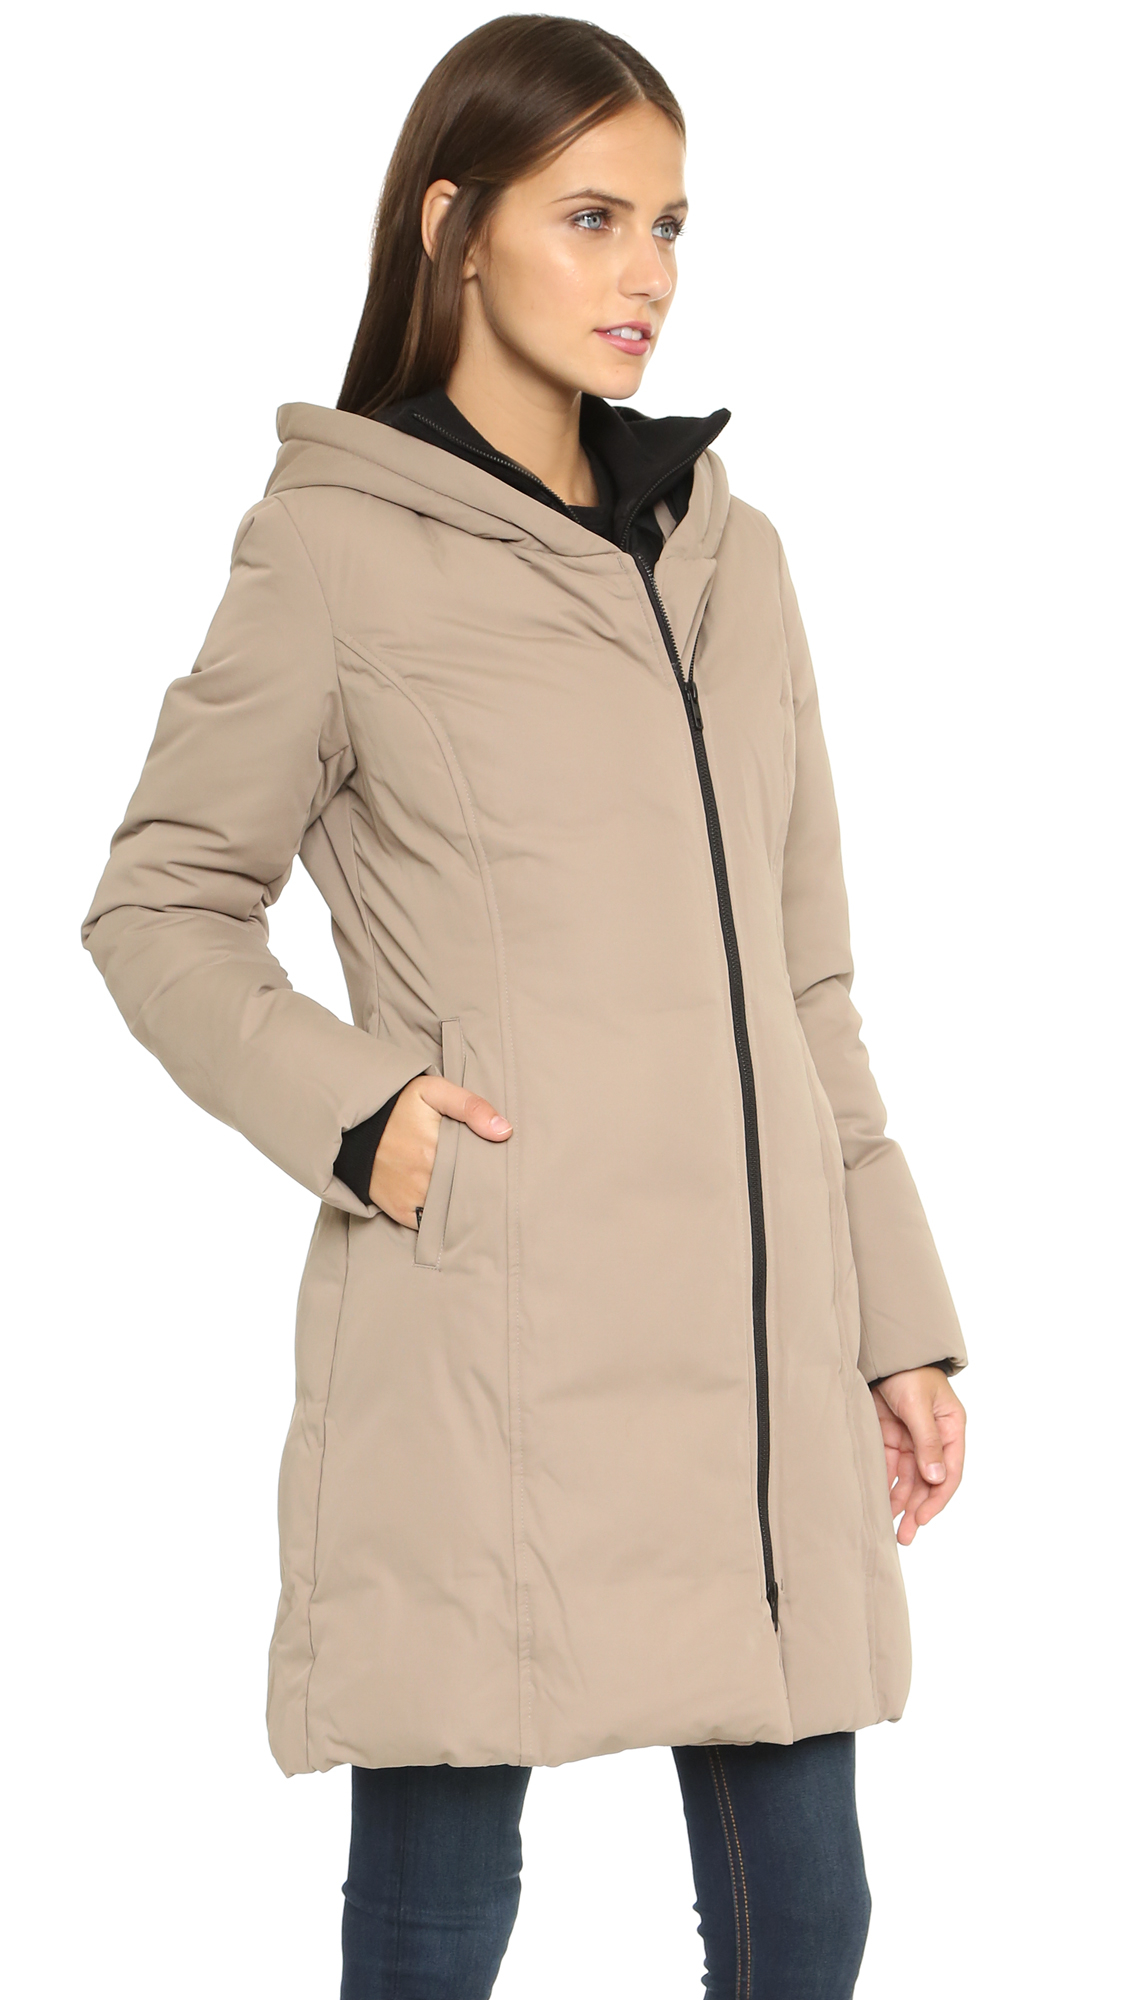 soia and kyo coat reviews